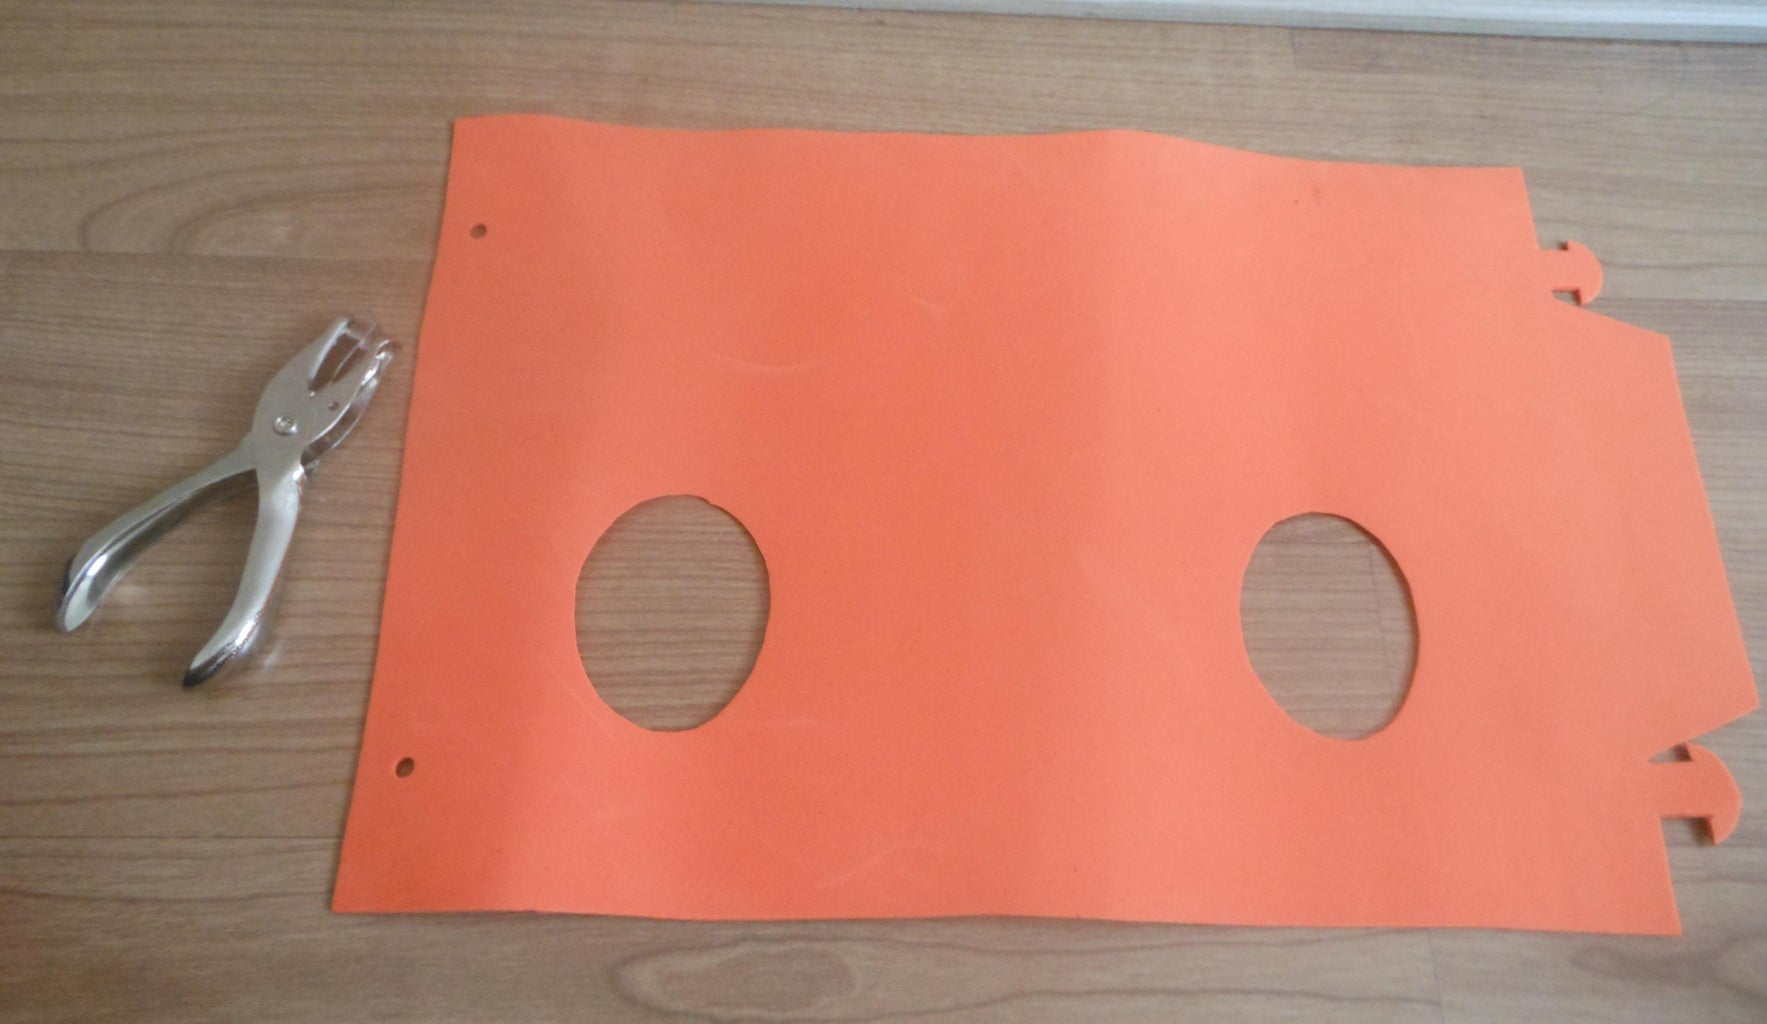 Use the Punching Tool to Punch 2 Holes As Shown.